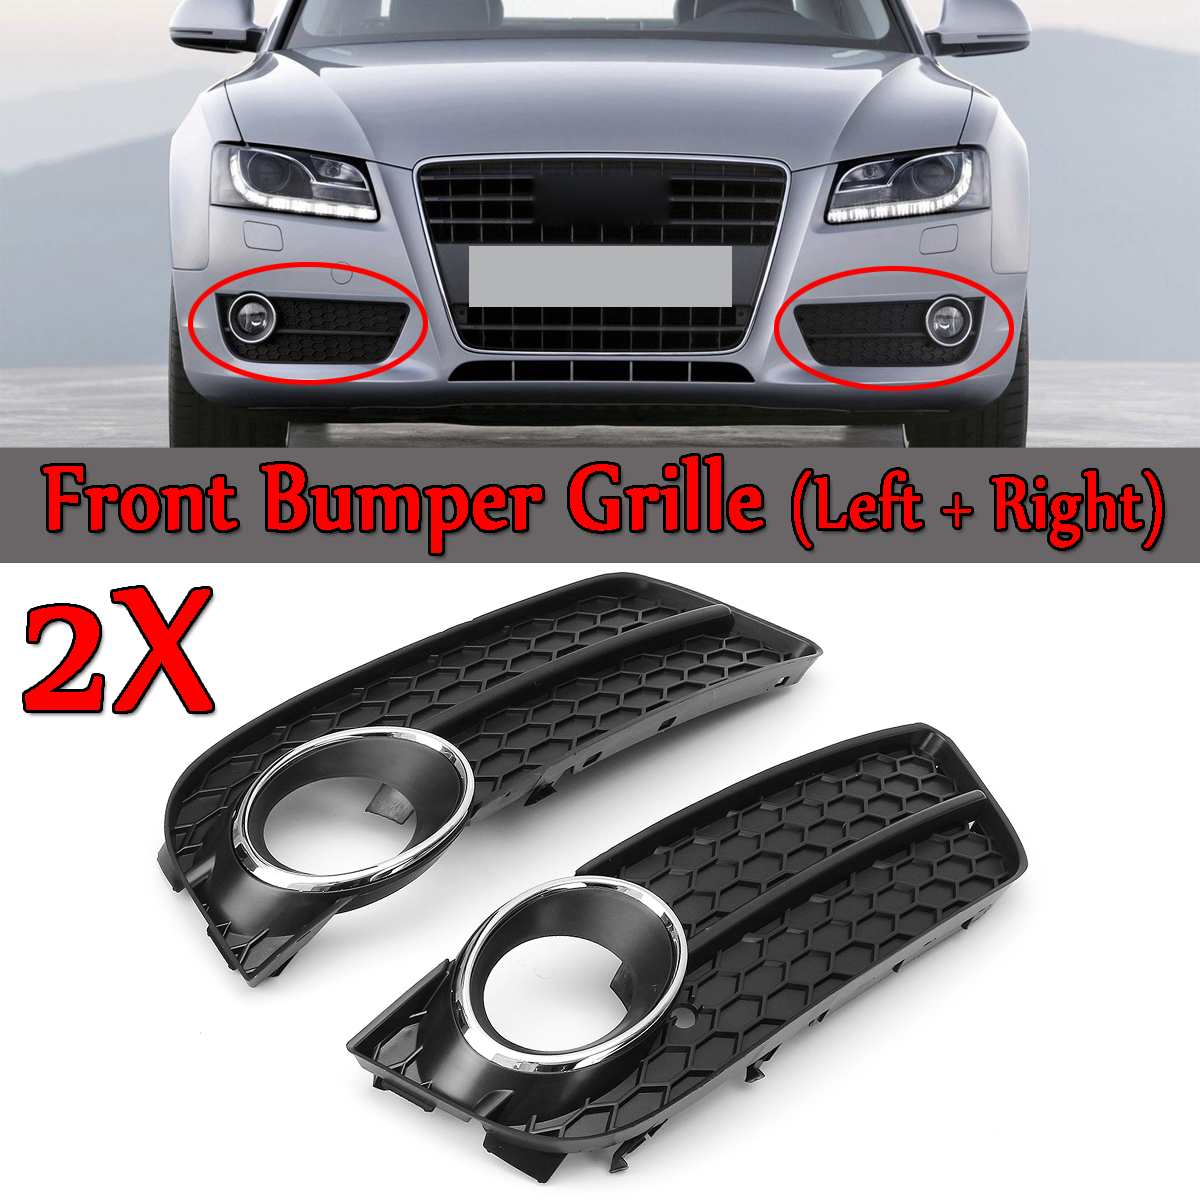 2pcs Front Bumper Fog Light Lamp Racing Grille Grill Cover For Audi A5 For Coupe/Sportback 2008-11 Cabriolet 10-11 Chrome Trim2pcs Front Bumper Fog Light Lamp Racing Grille Grill Cover For Audi A5 For Coupe/Sportback 2008-11 Cabriolet 10-11 Chrome Trim